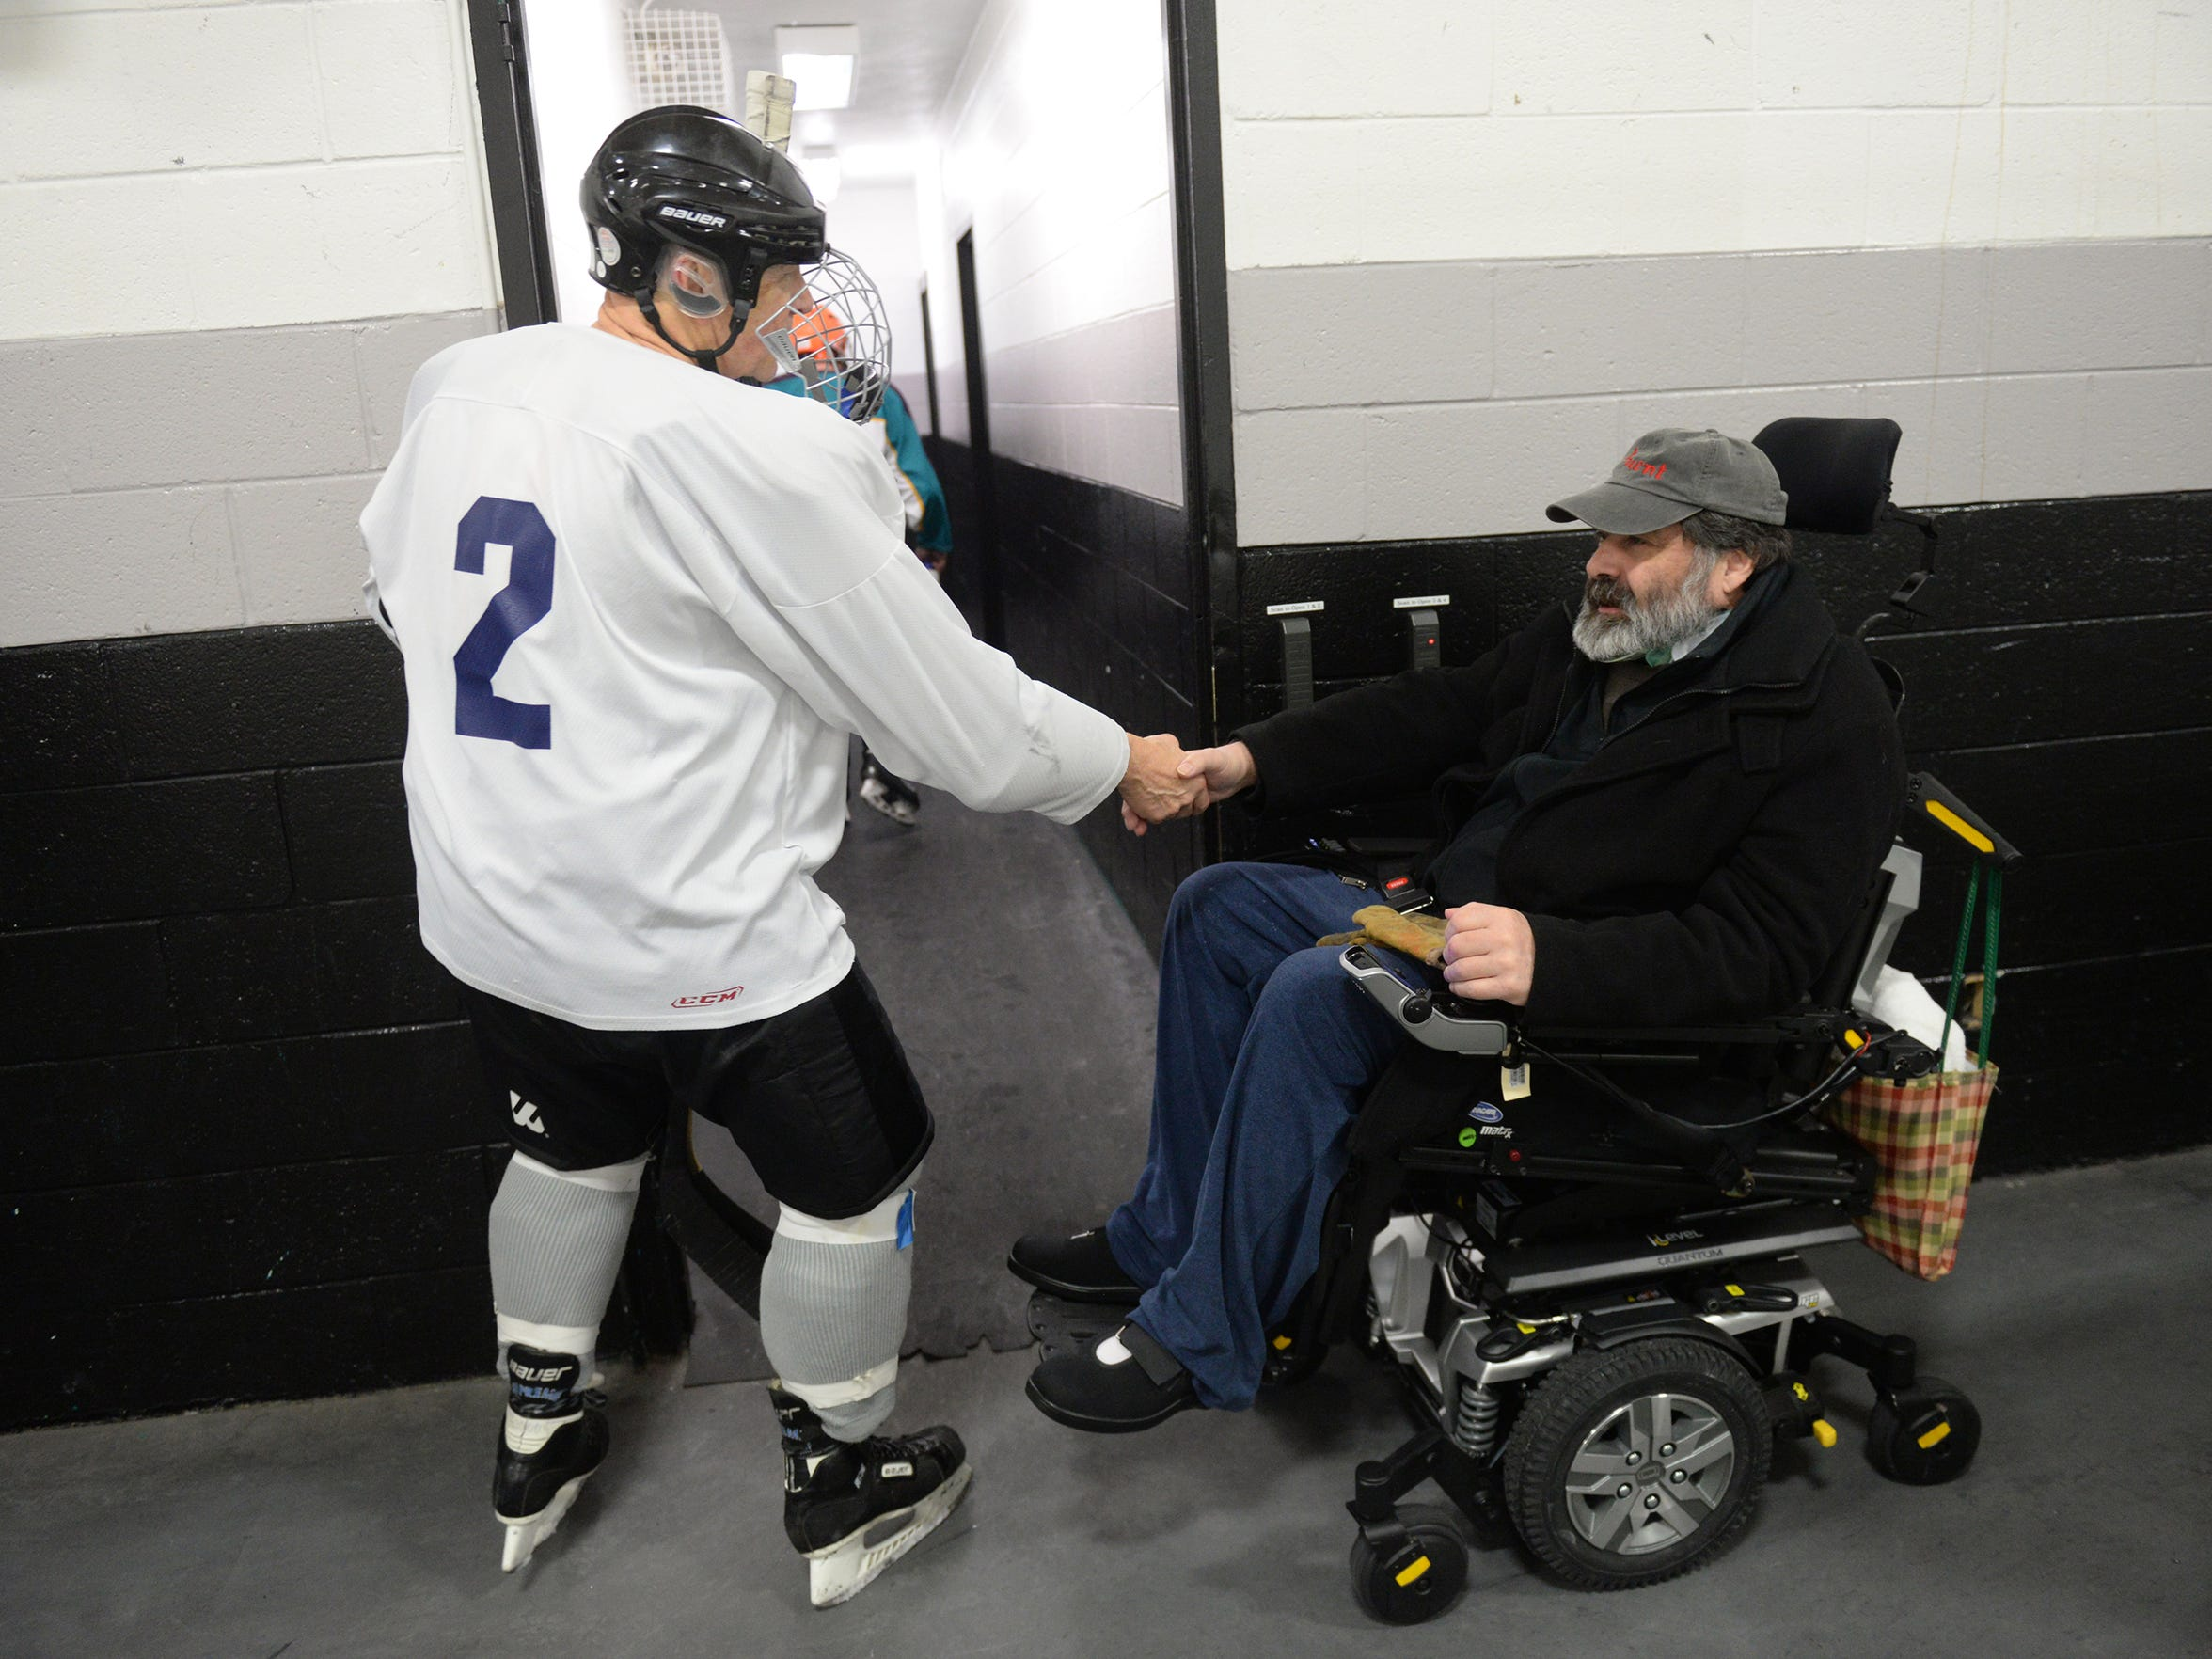 """Father D"" greets players after one of the charity"